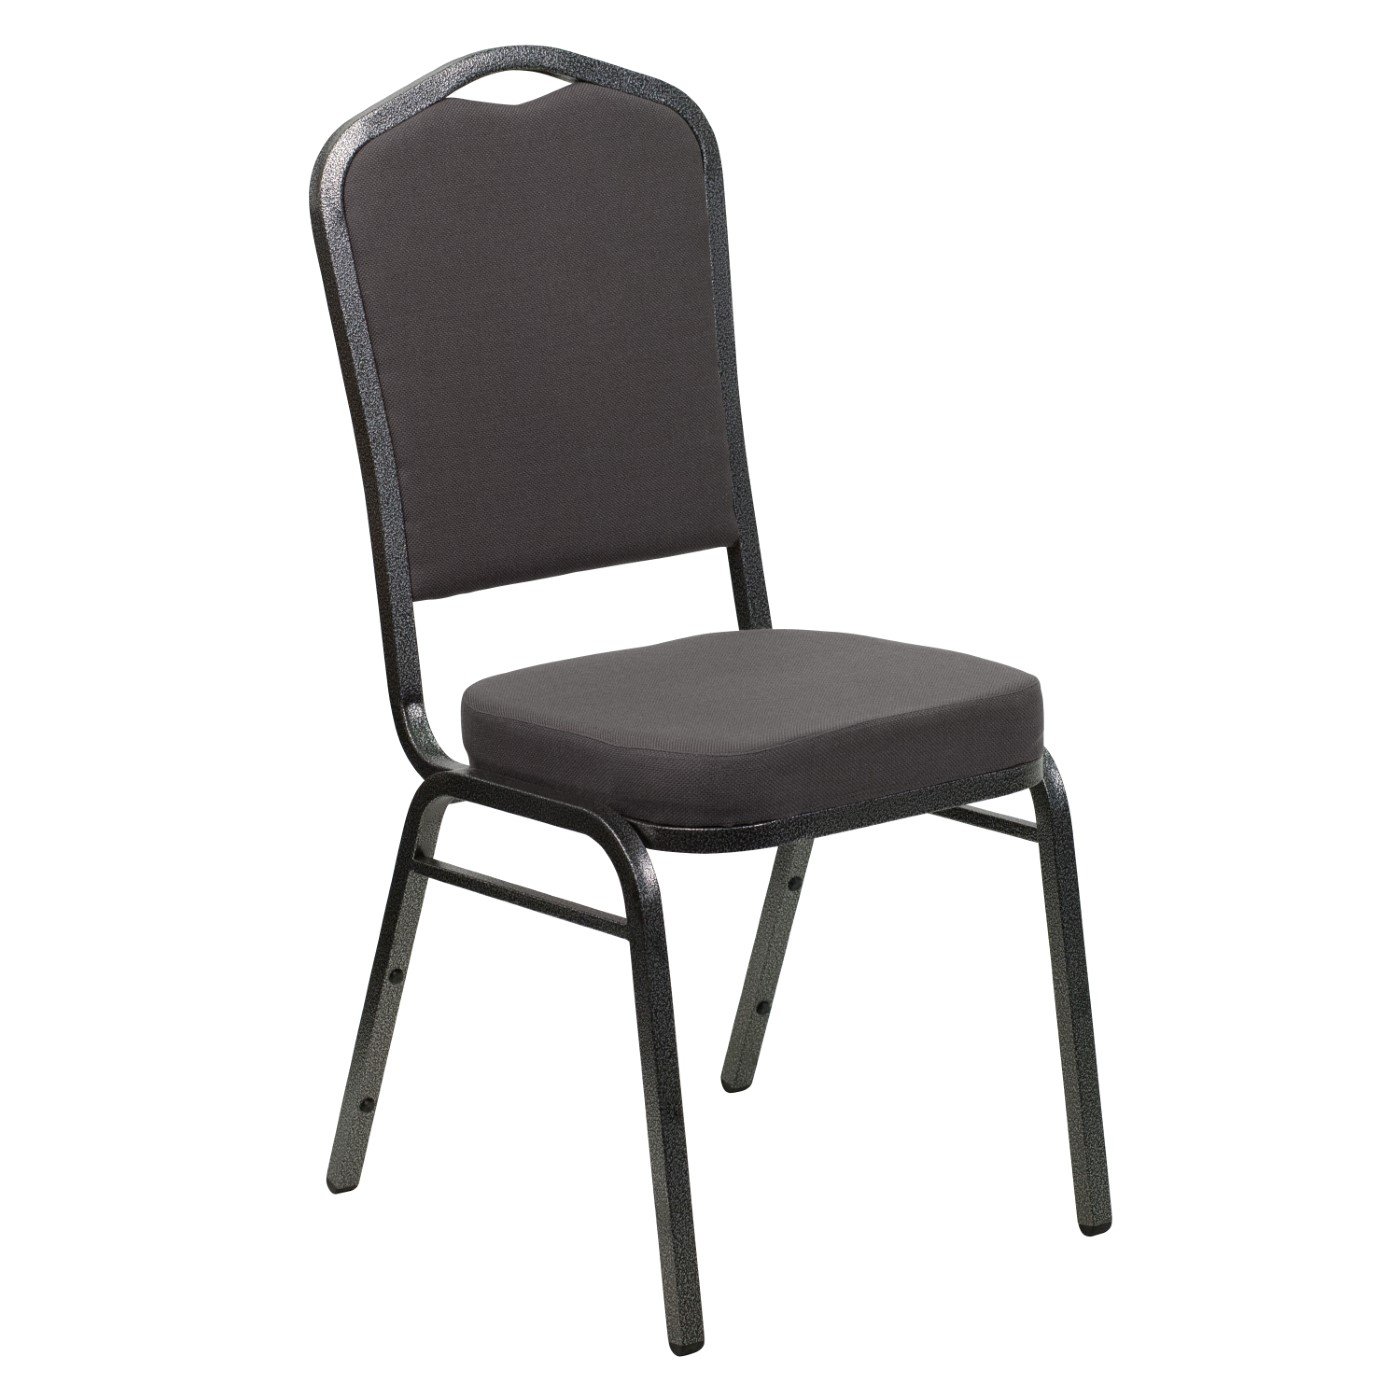 TOUGH ENOUGH Series Crown Back Stacking Banquet Chair in Gray Fabric - Silver Vein Frame